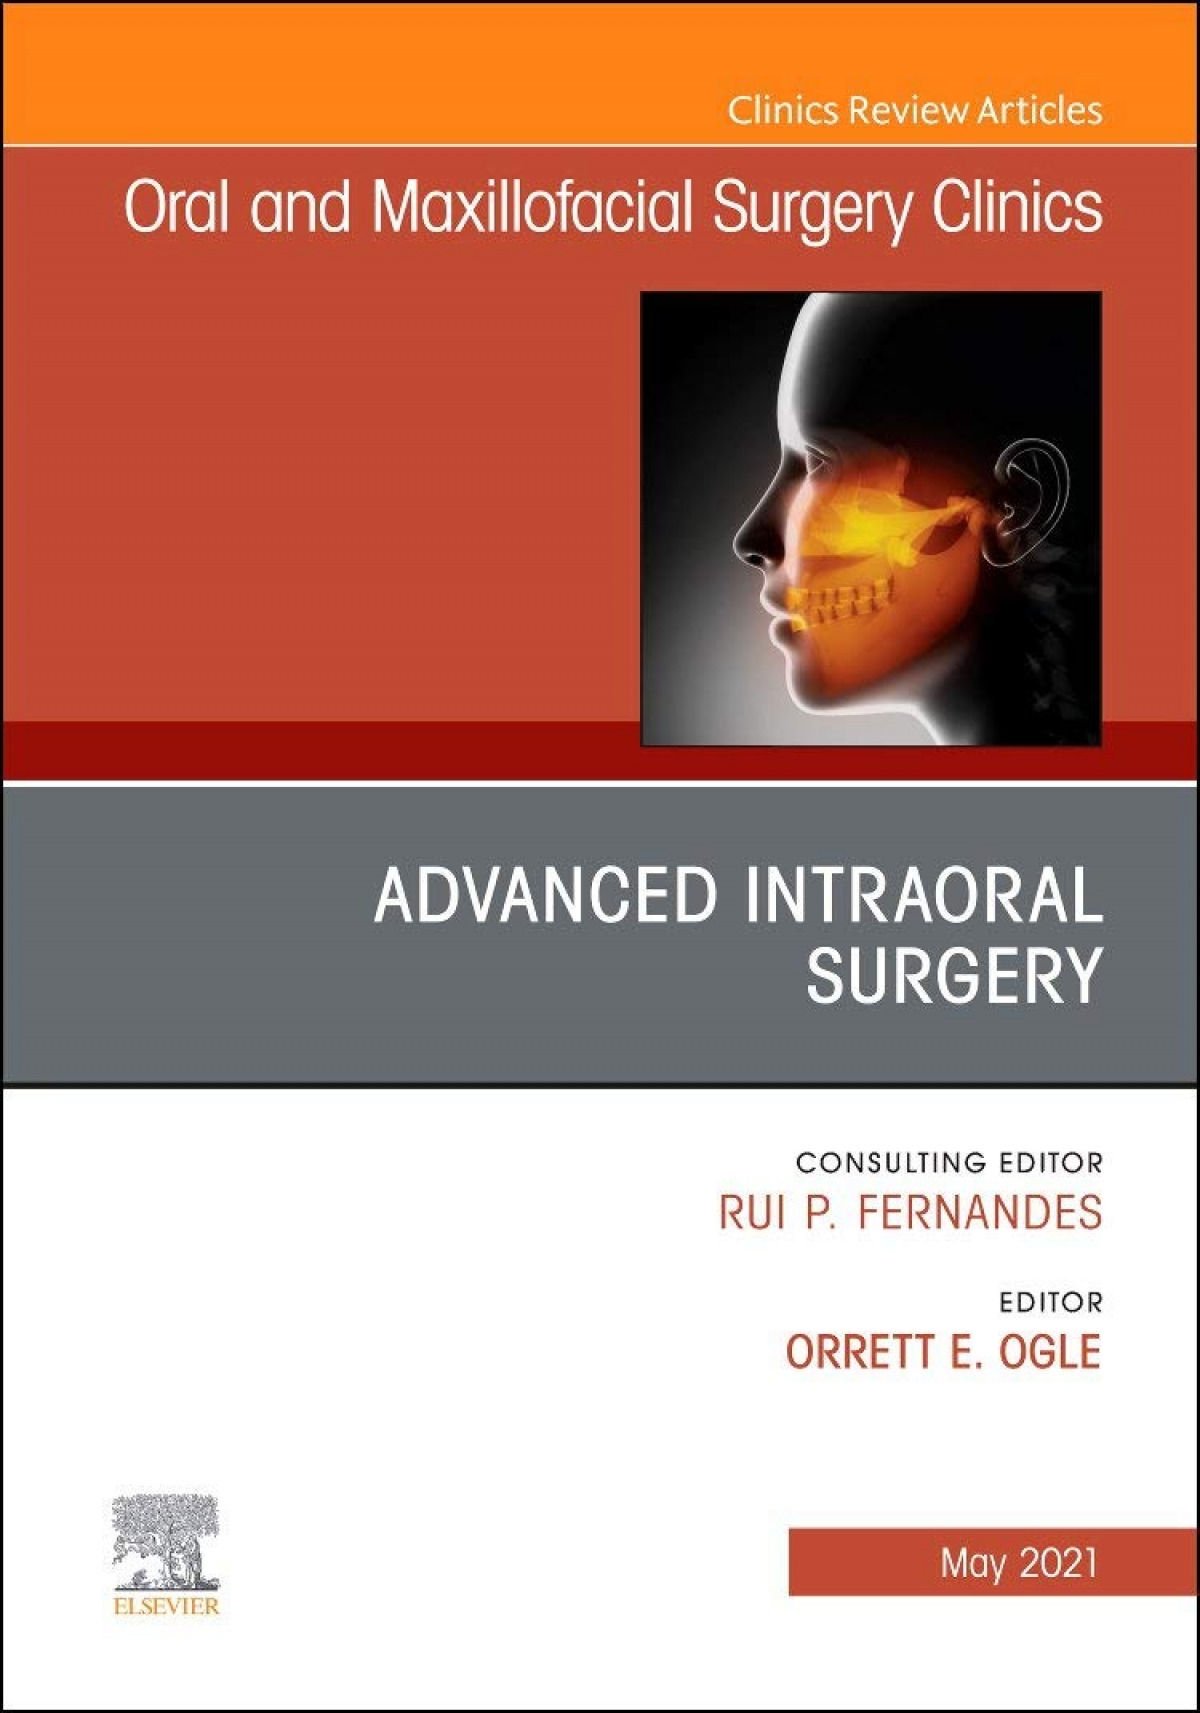 Advanced intraoral surgery